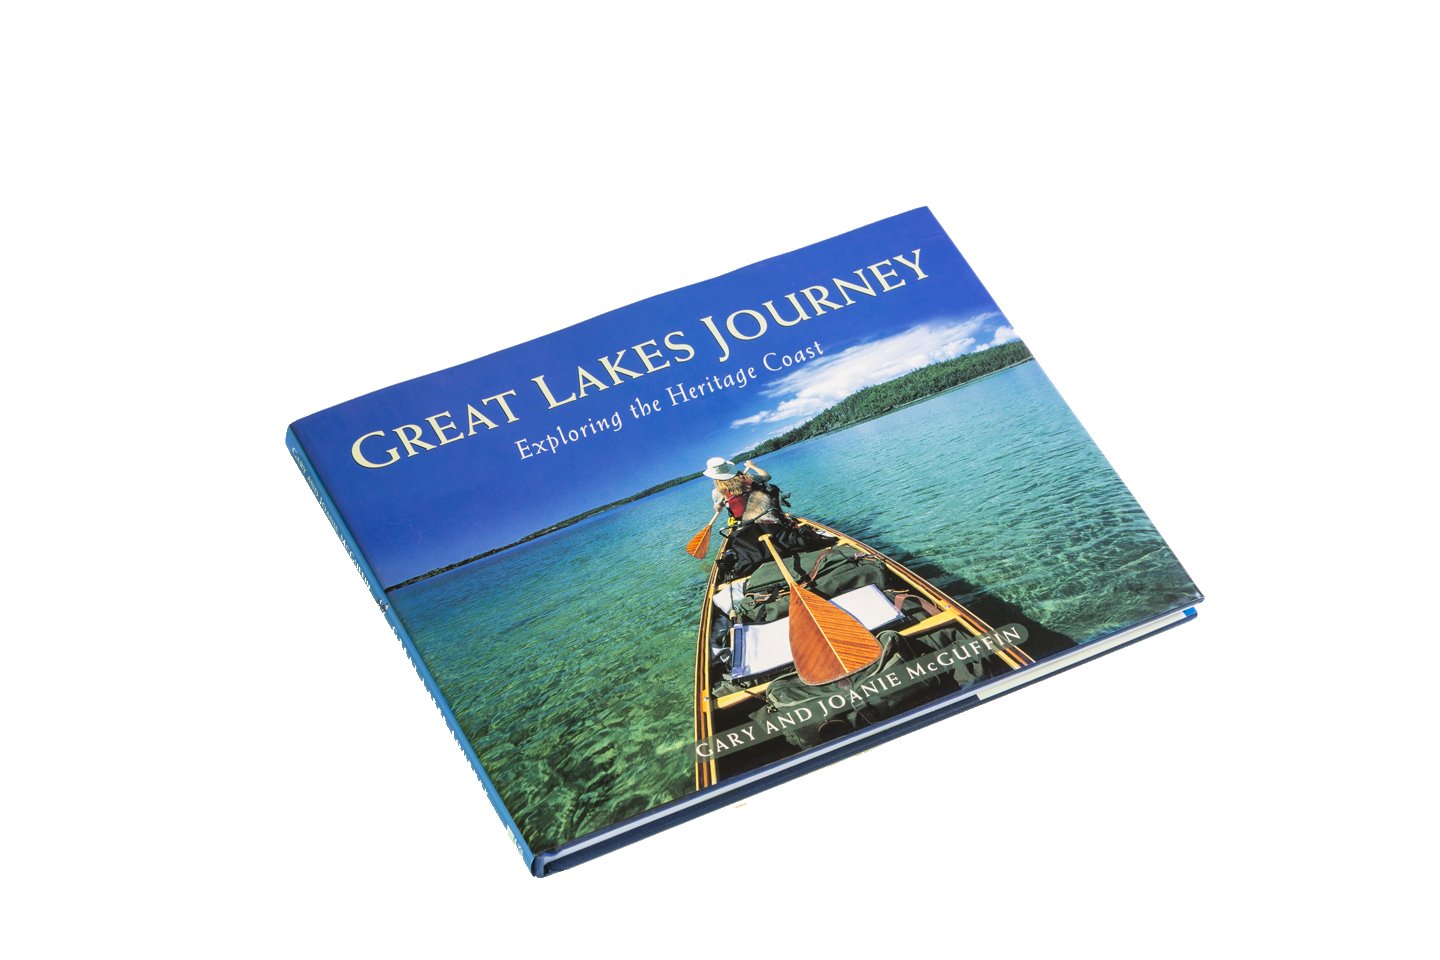 Book Cover of Great Lakes Journey Exploring the Heritage Coast